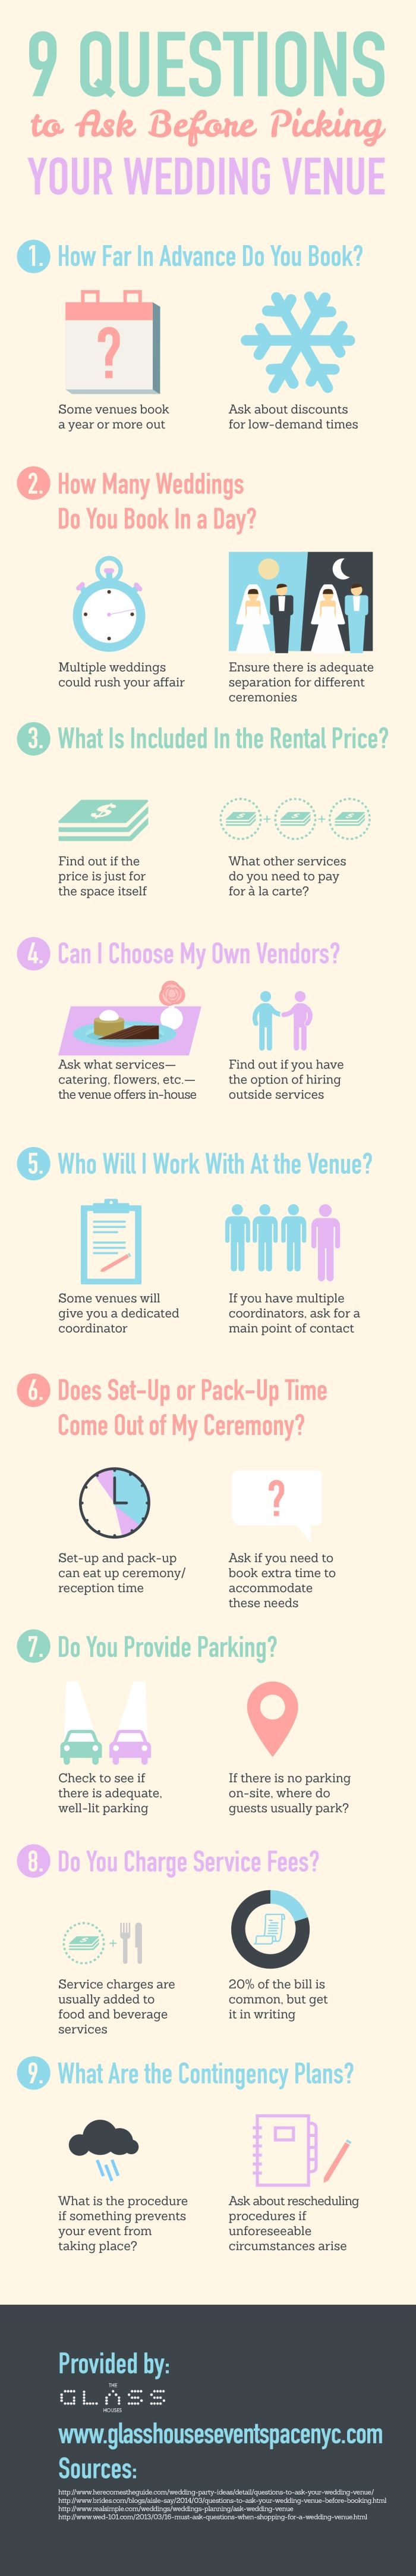 It's important to ask about parking when looking for a wedding venue. If there is no parking on-site, ask where guests usually park during special events. Find other questions to ask by reading through this infographic from a wedding venue in NYC!